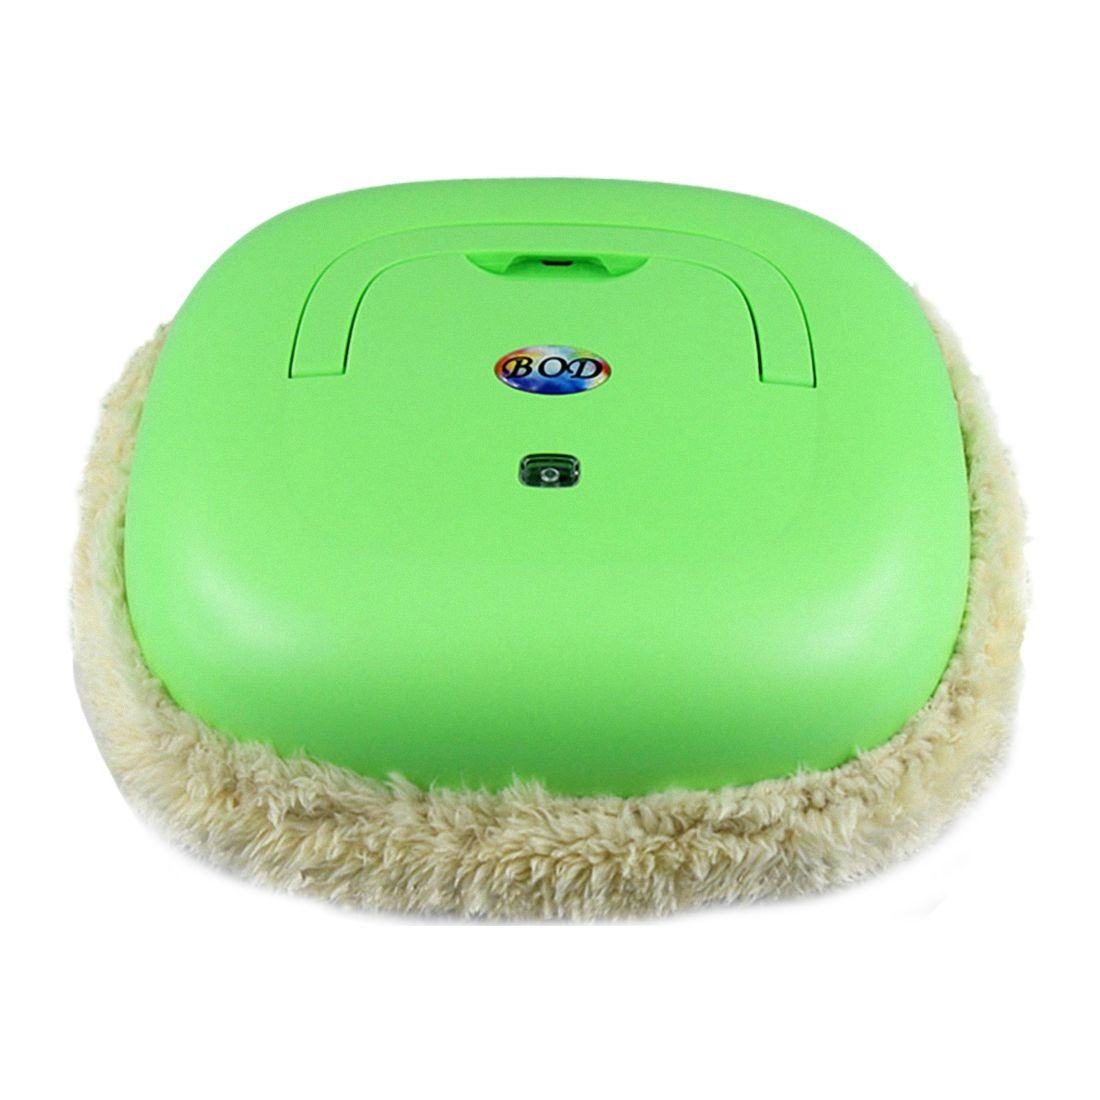 intelligent sweep mopping to clean the machine USB charging Multi-functional practical sweep mopping machineintelligent sweep mopping to clean the machine USB charging Multi-functional practical sweep mopping machine